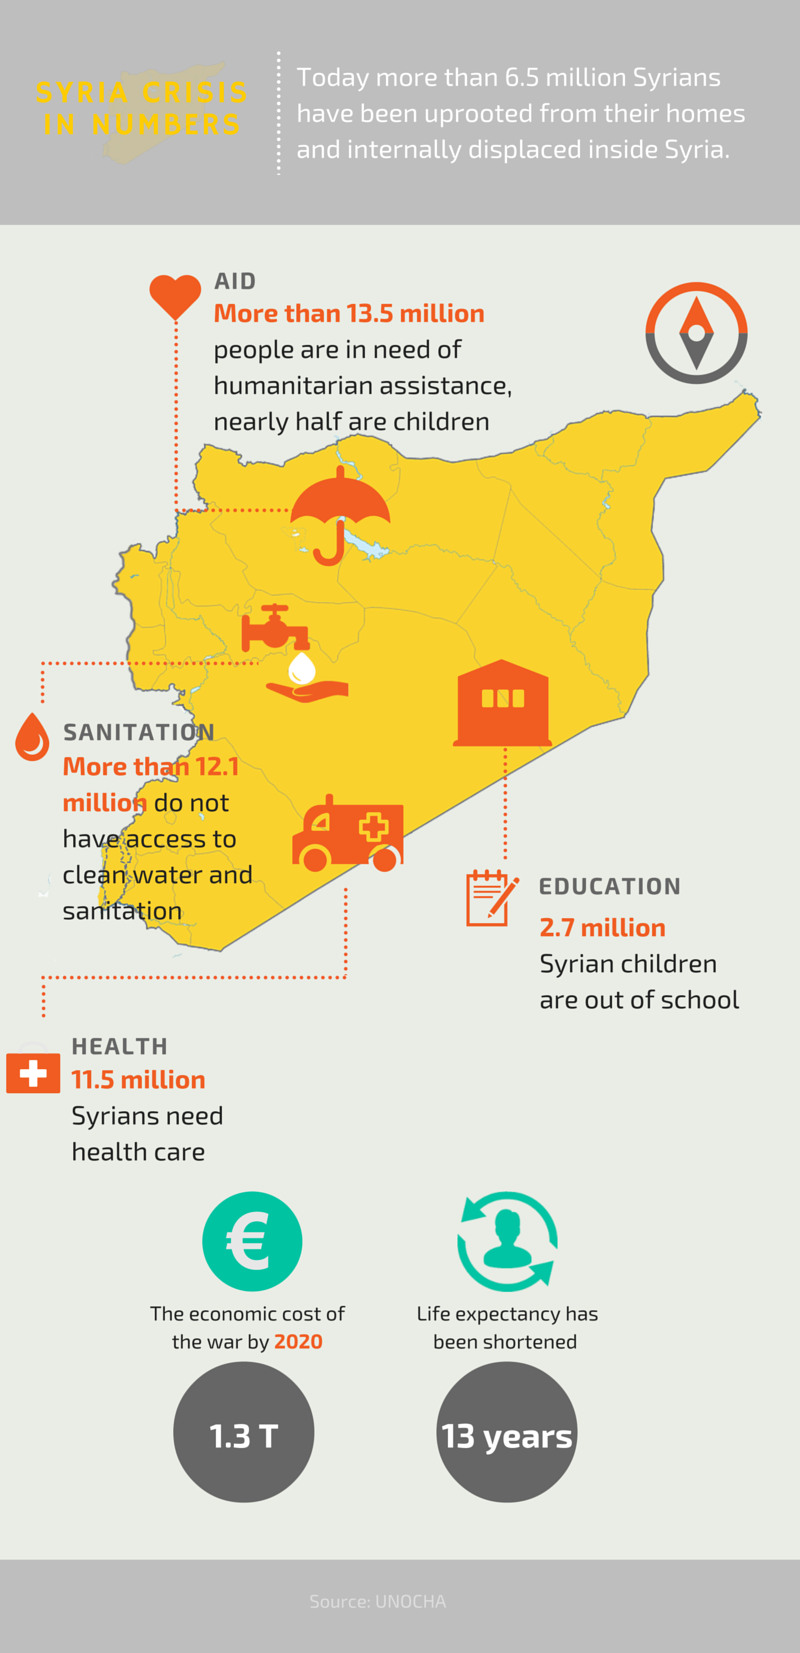 Today more than 6.5 million Syrians have been uprooted from their homes and internally displaced inside Syria. This infographic, part of Caritas campaign 'Syria - Peace is possible' shows the impact of civil war in Syria.